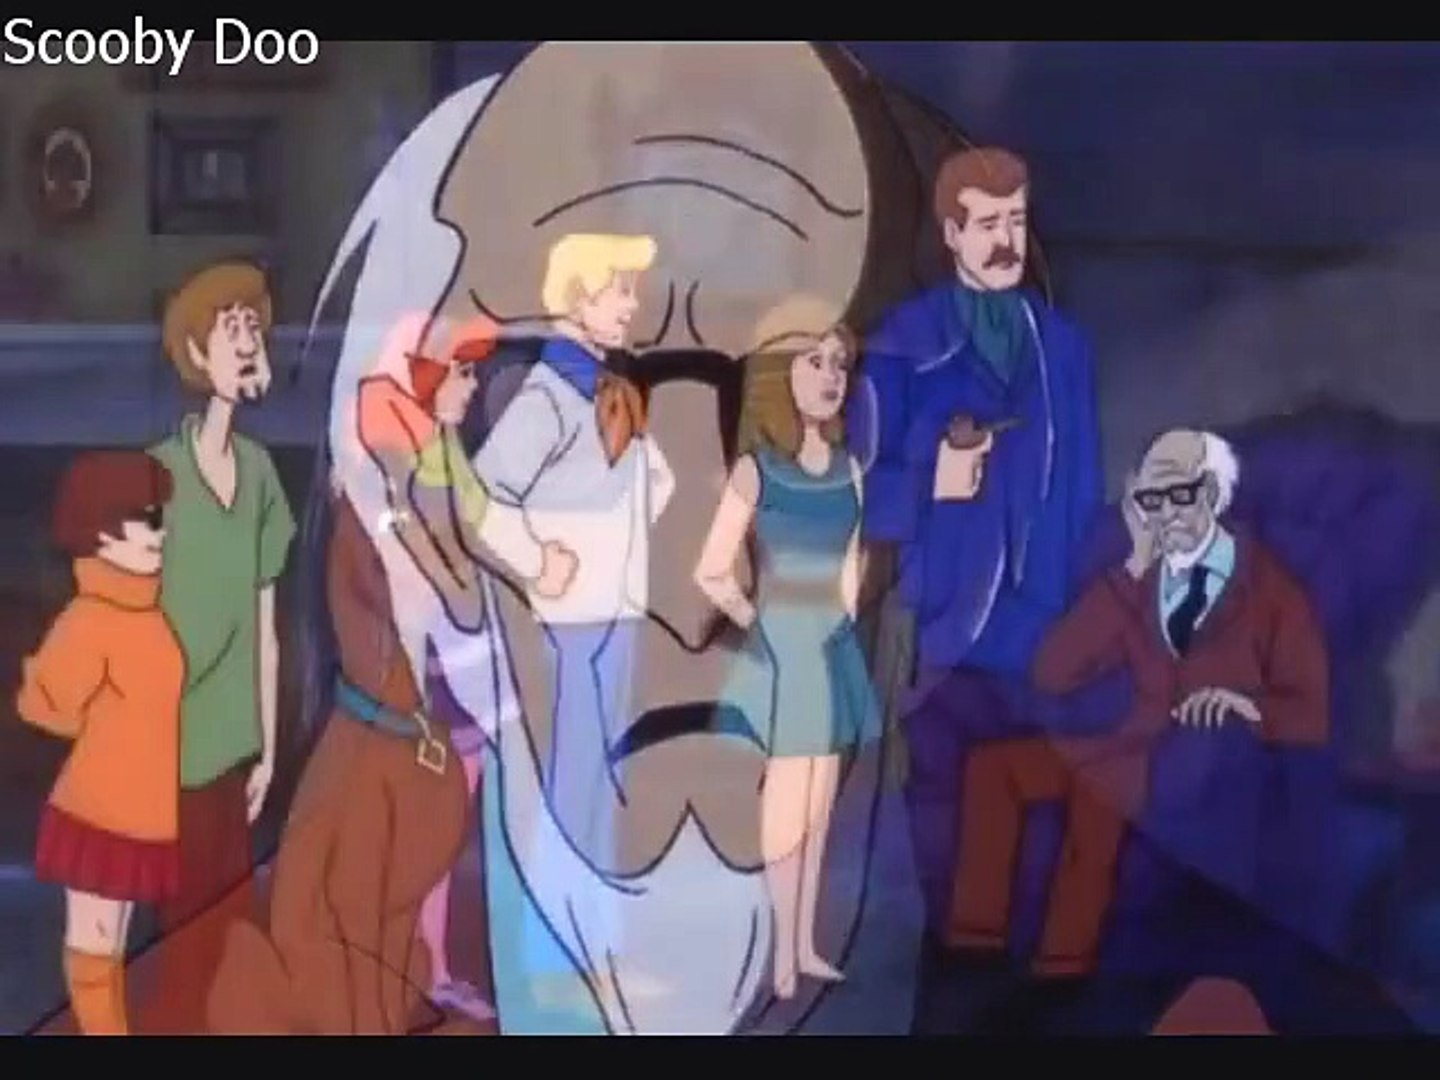 Scooby Doo Where Are You - Episode 6 - What the Hex Going On